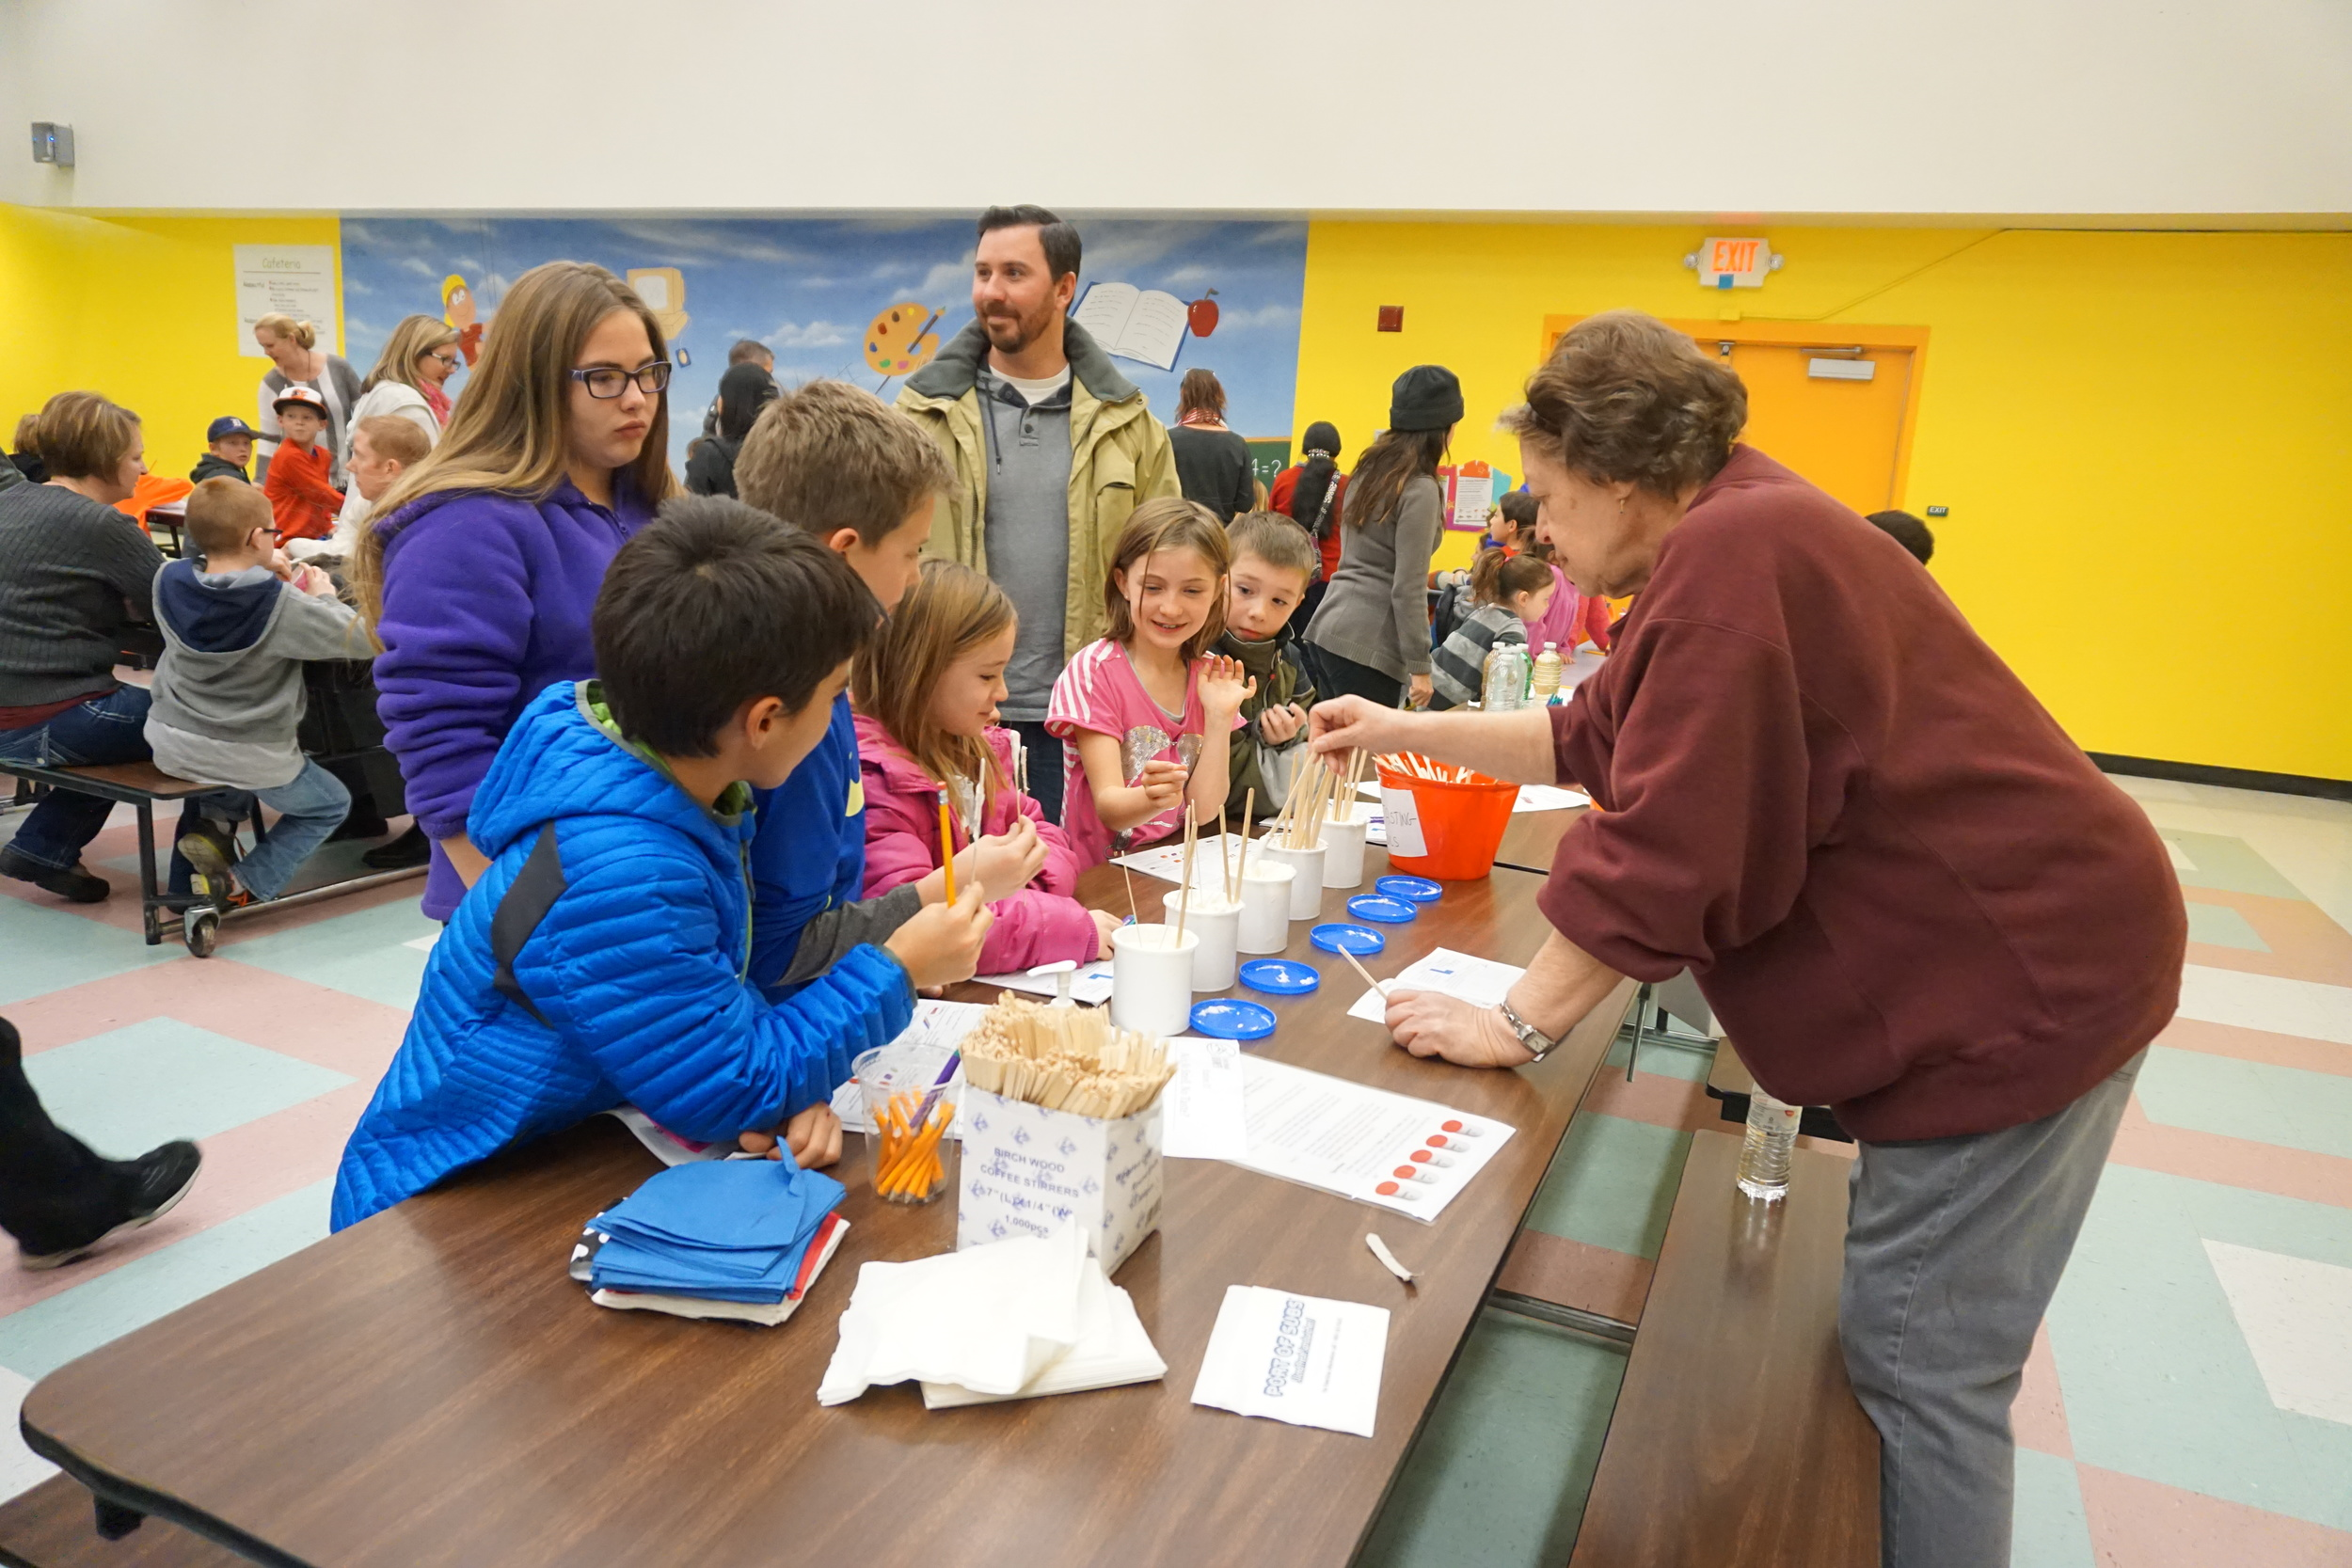 Marlys Pryor volunteers at a Family Science Night at Caughlin Ranch Elementary School.